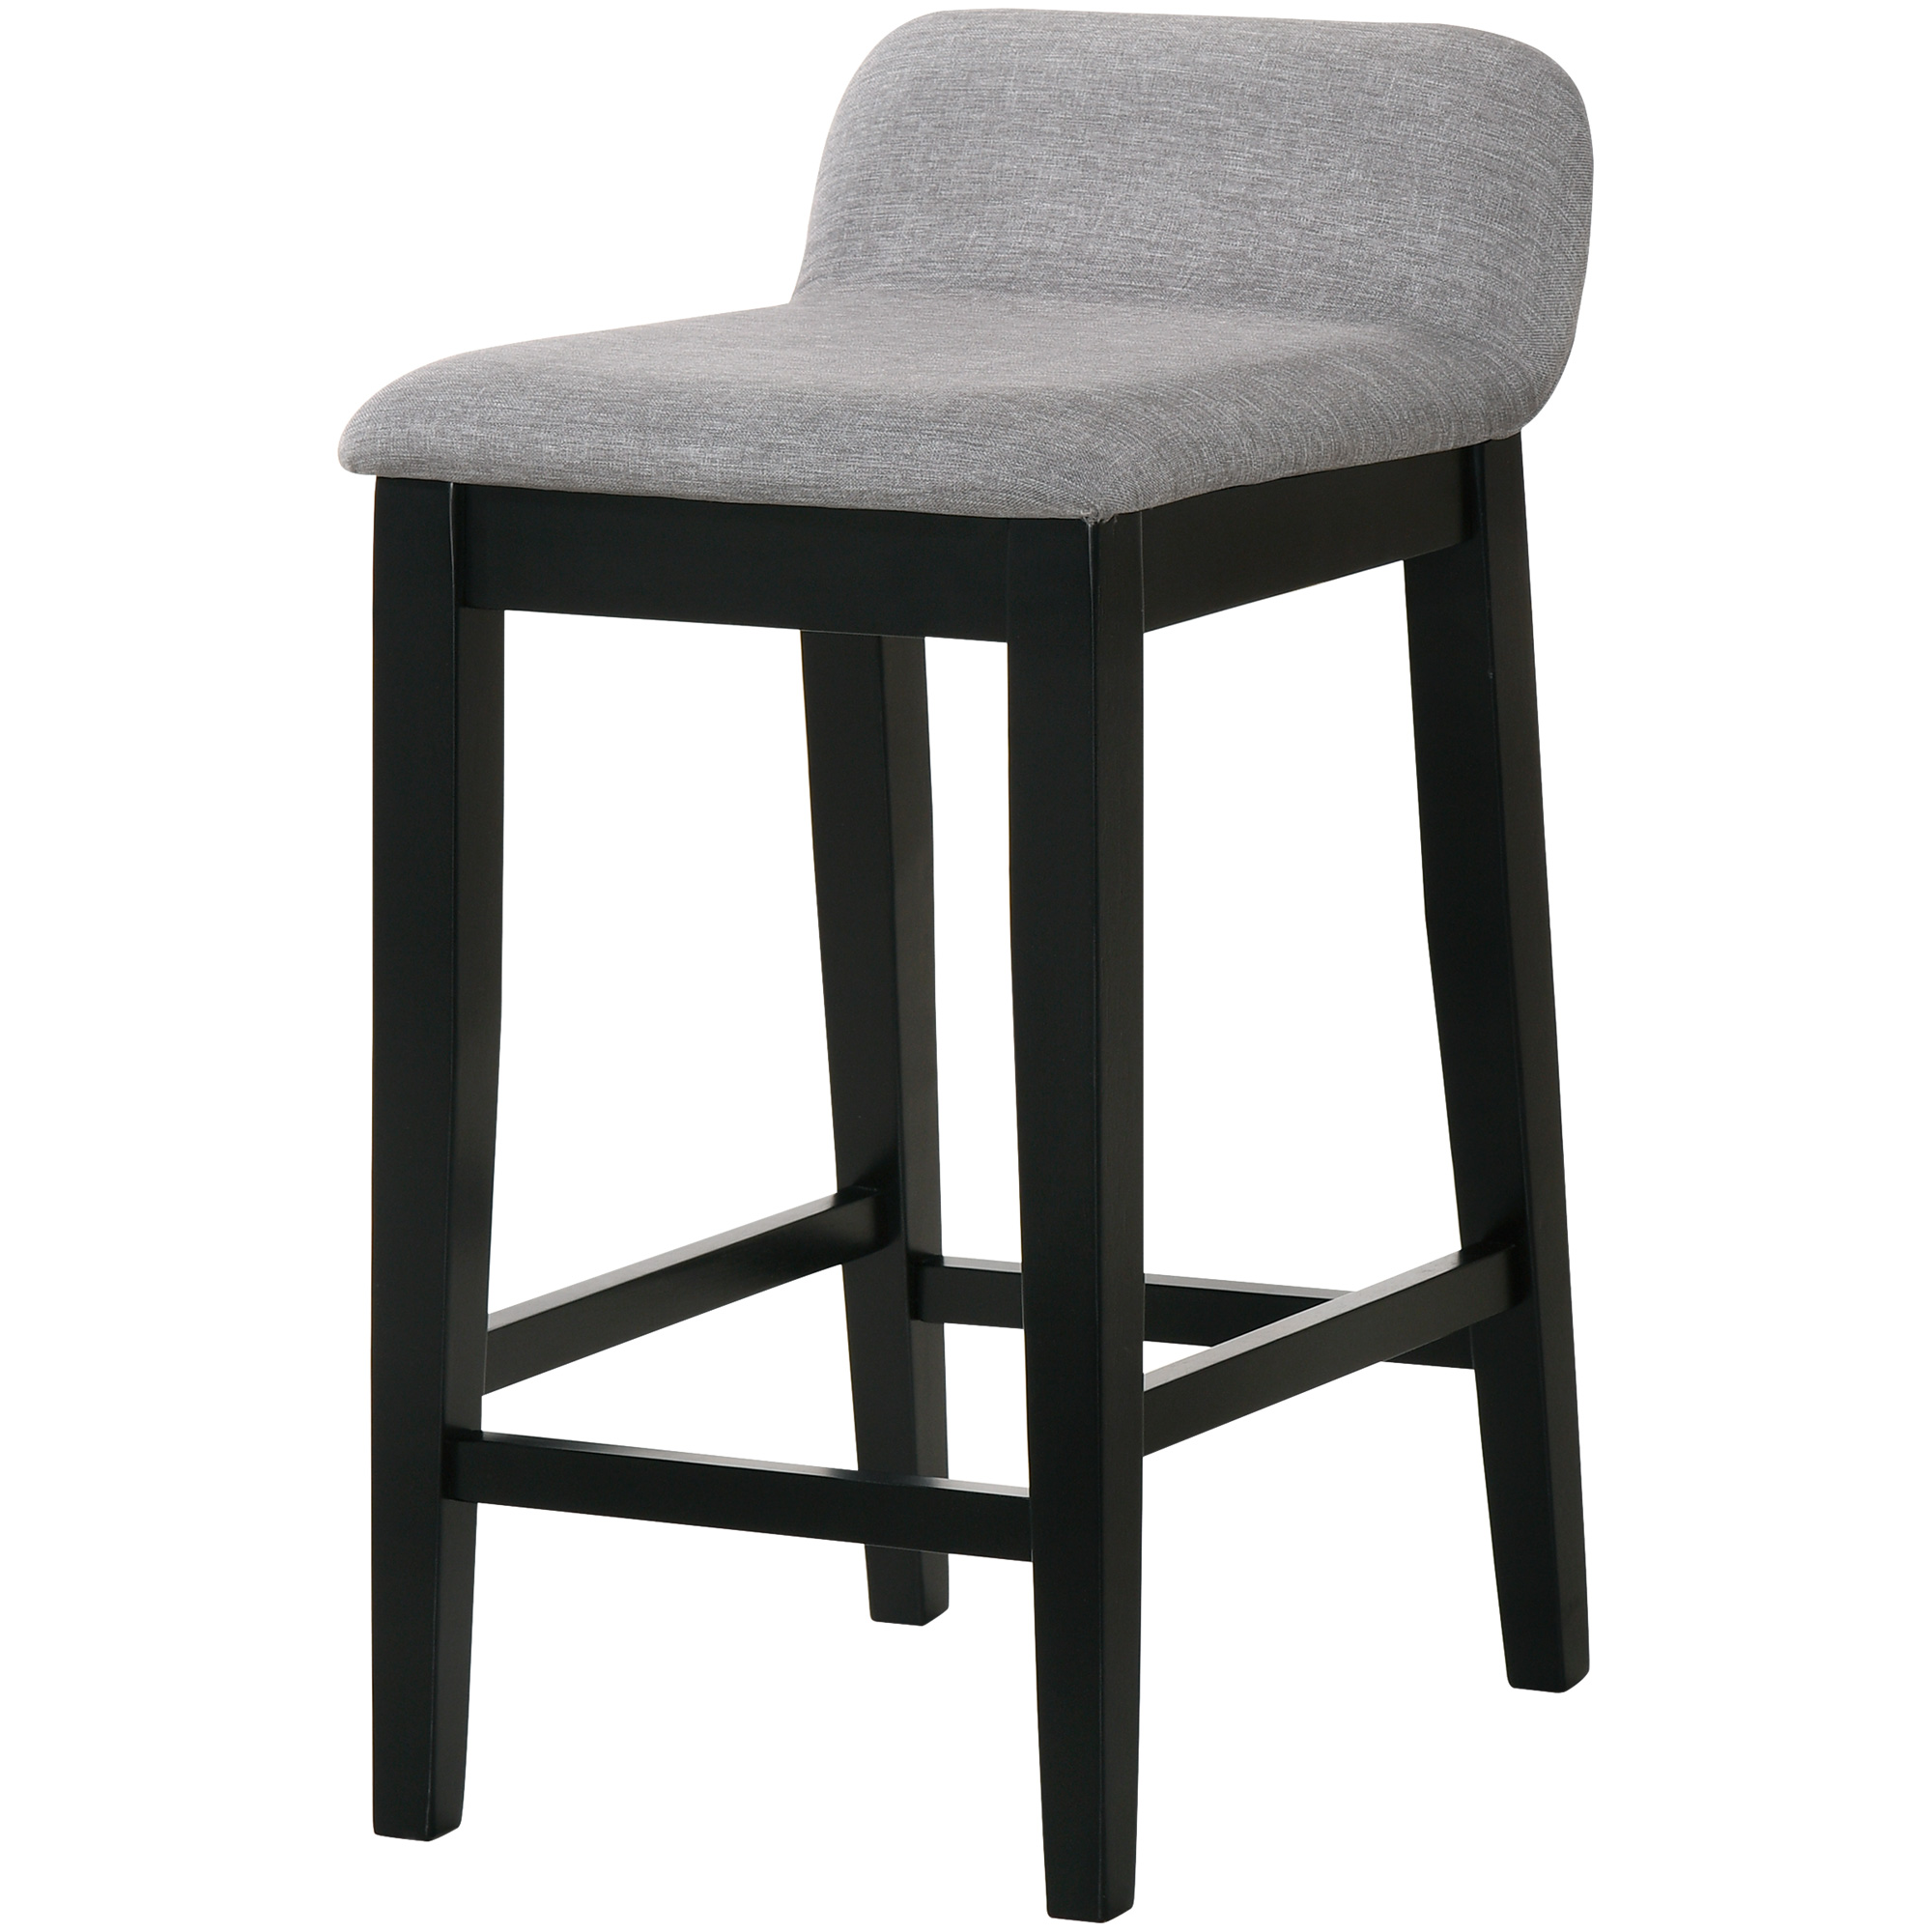 Lifestyle Enterprise | Maddox Light Walnut Counter Stool | Gray